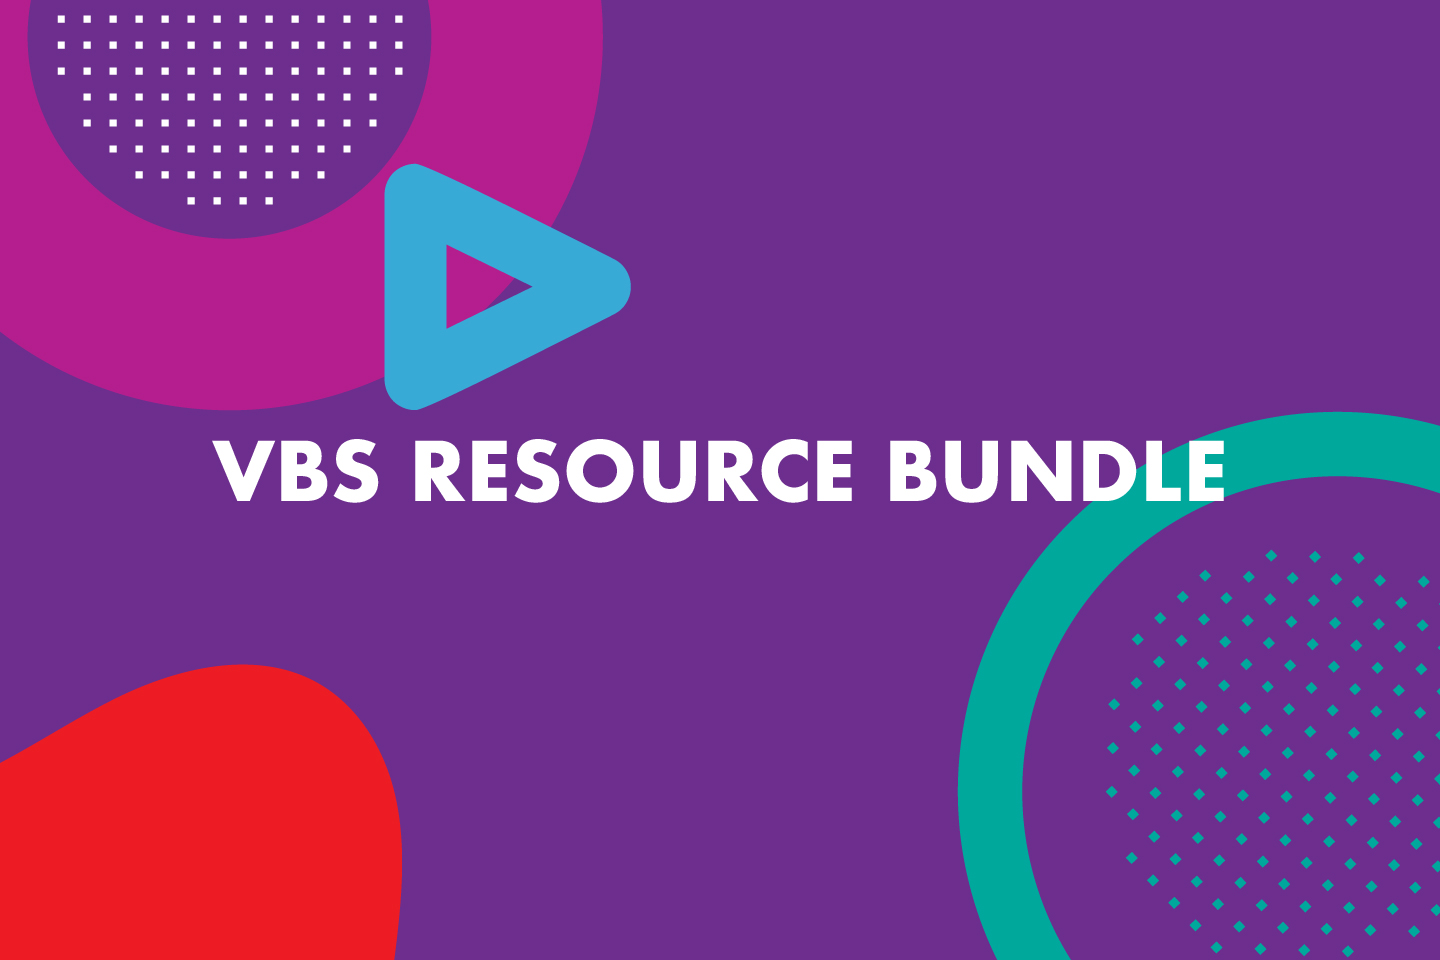 FREE VBS RESOURCE BUNDLE